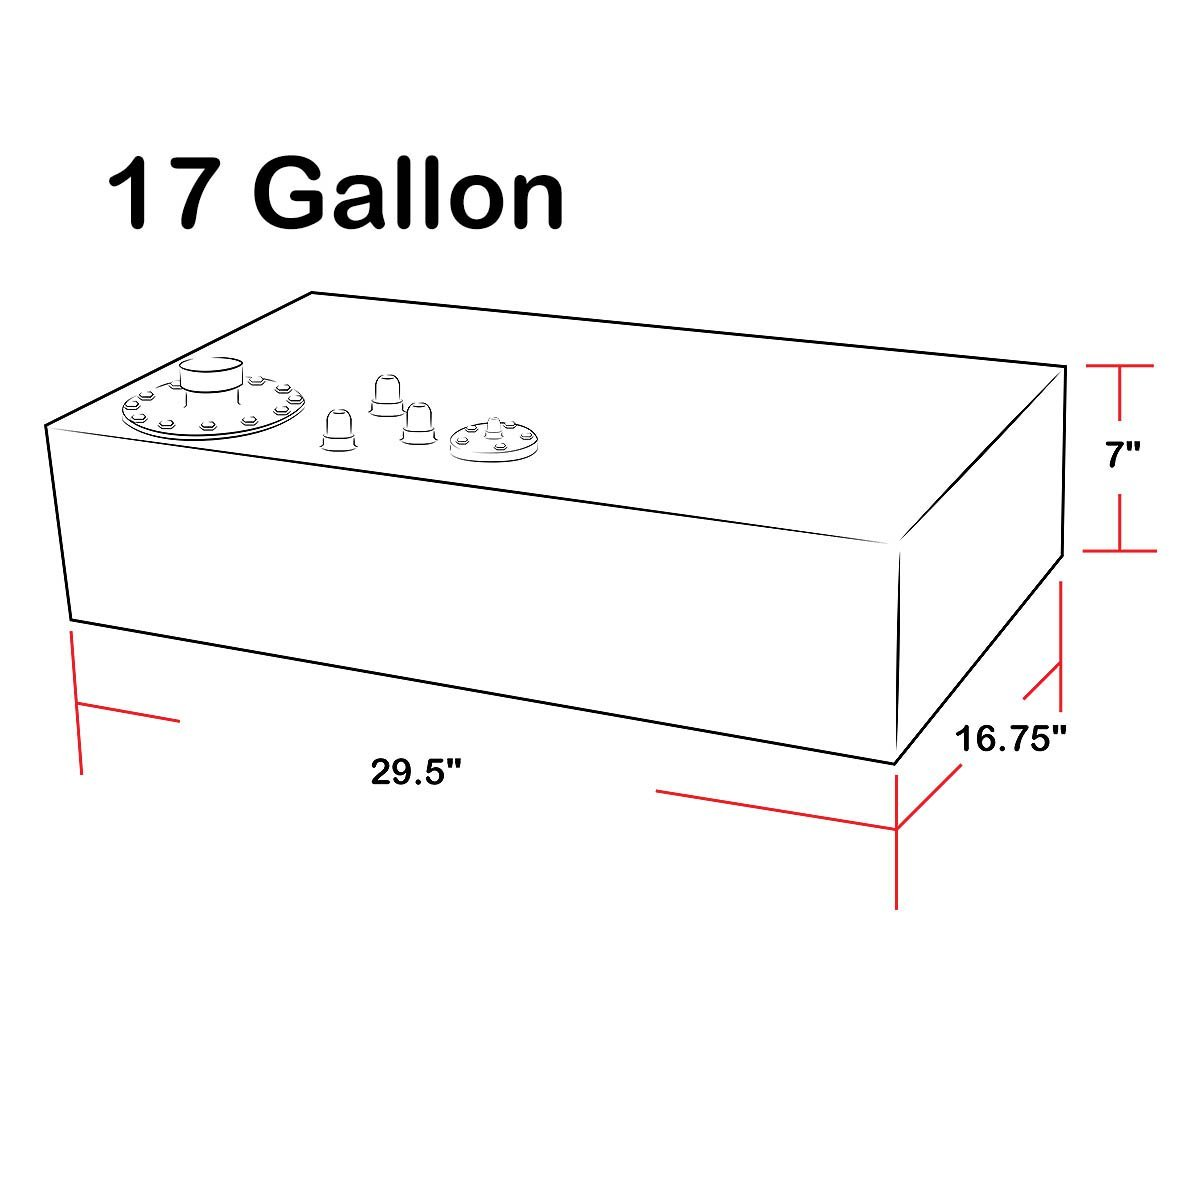 17 Gallon 64 Liter Top Feed Aluminum Fuel Cell Gas Tank W